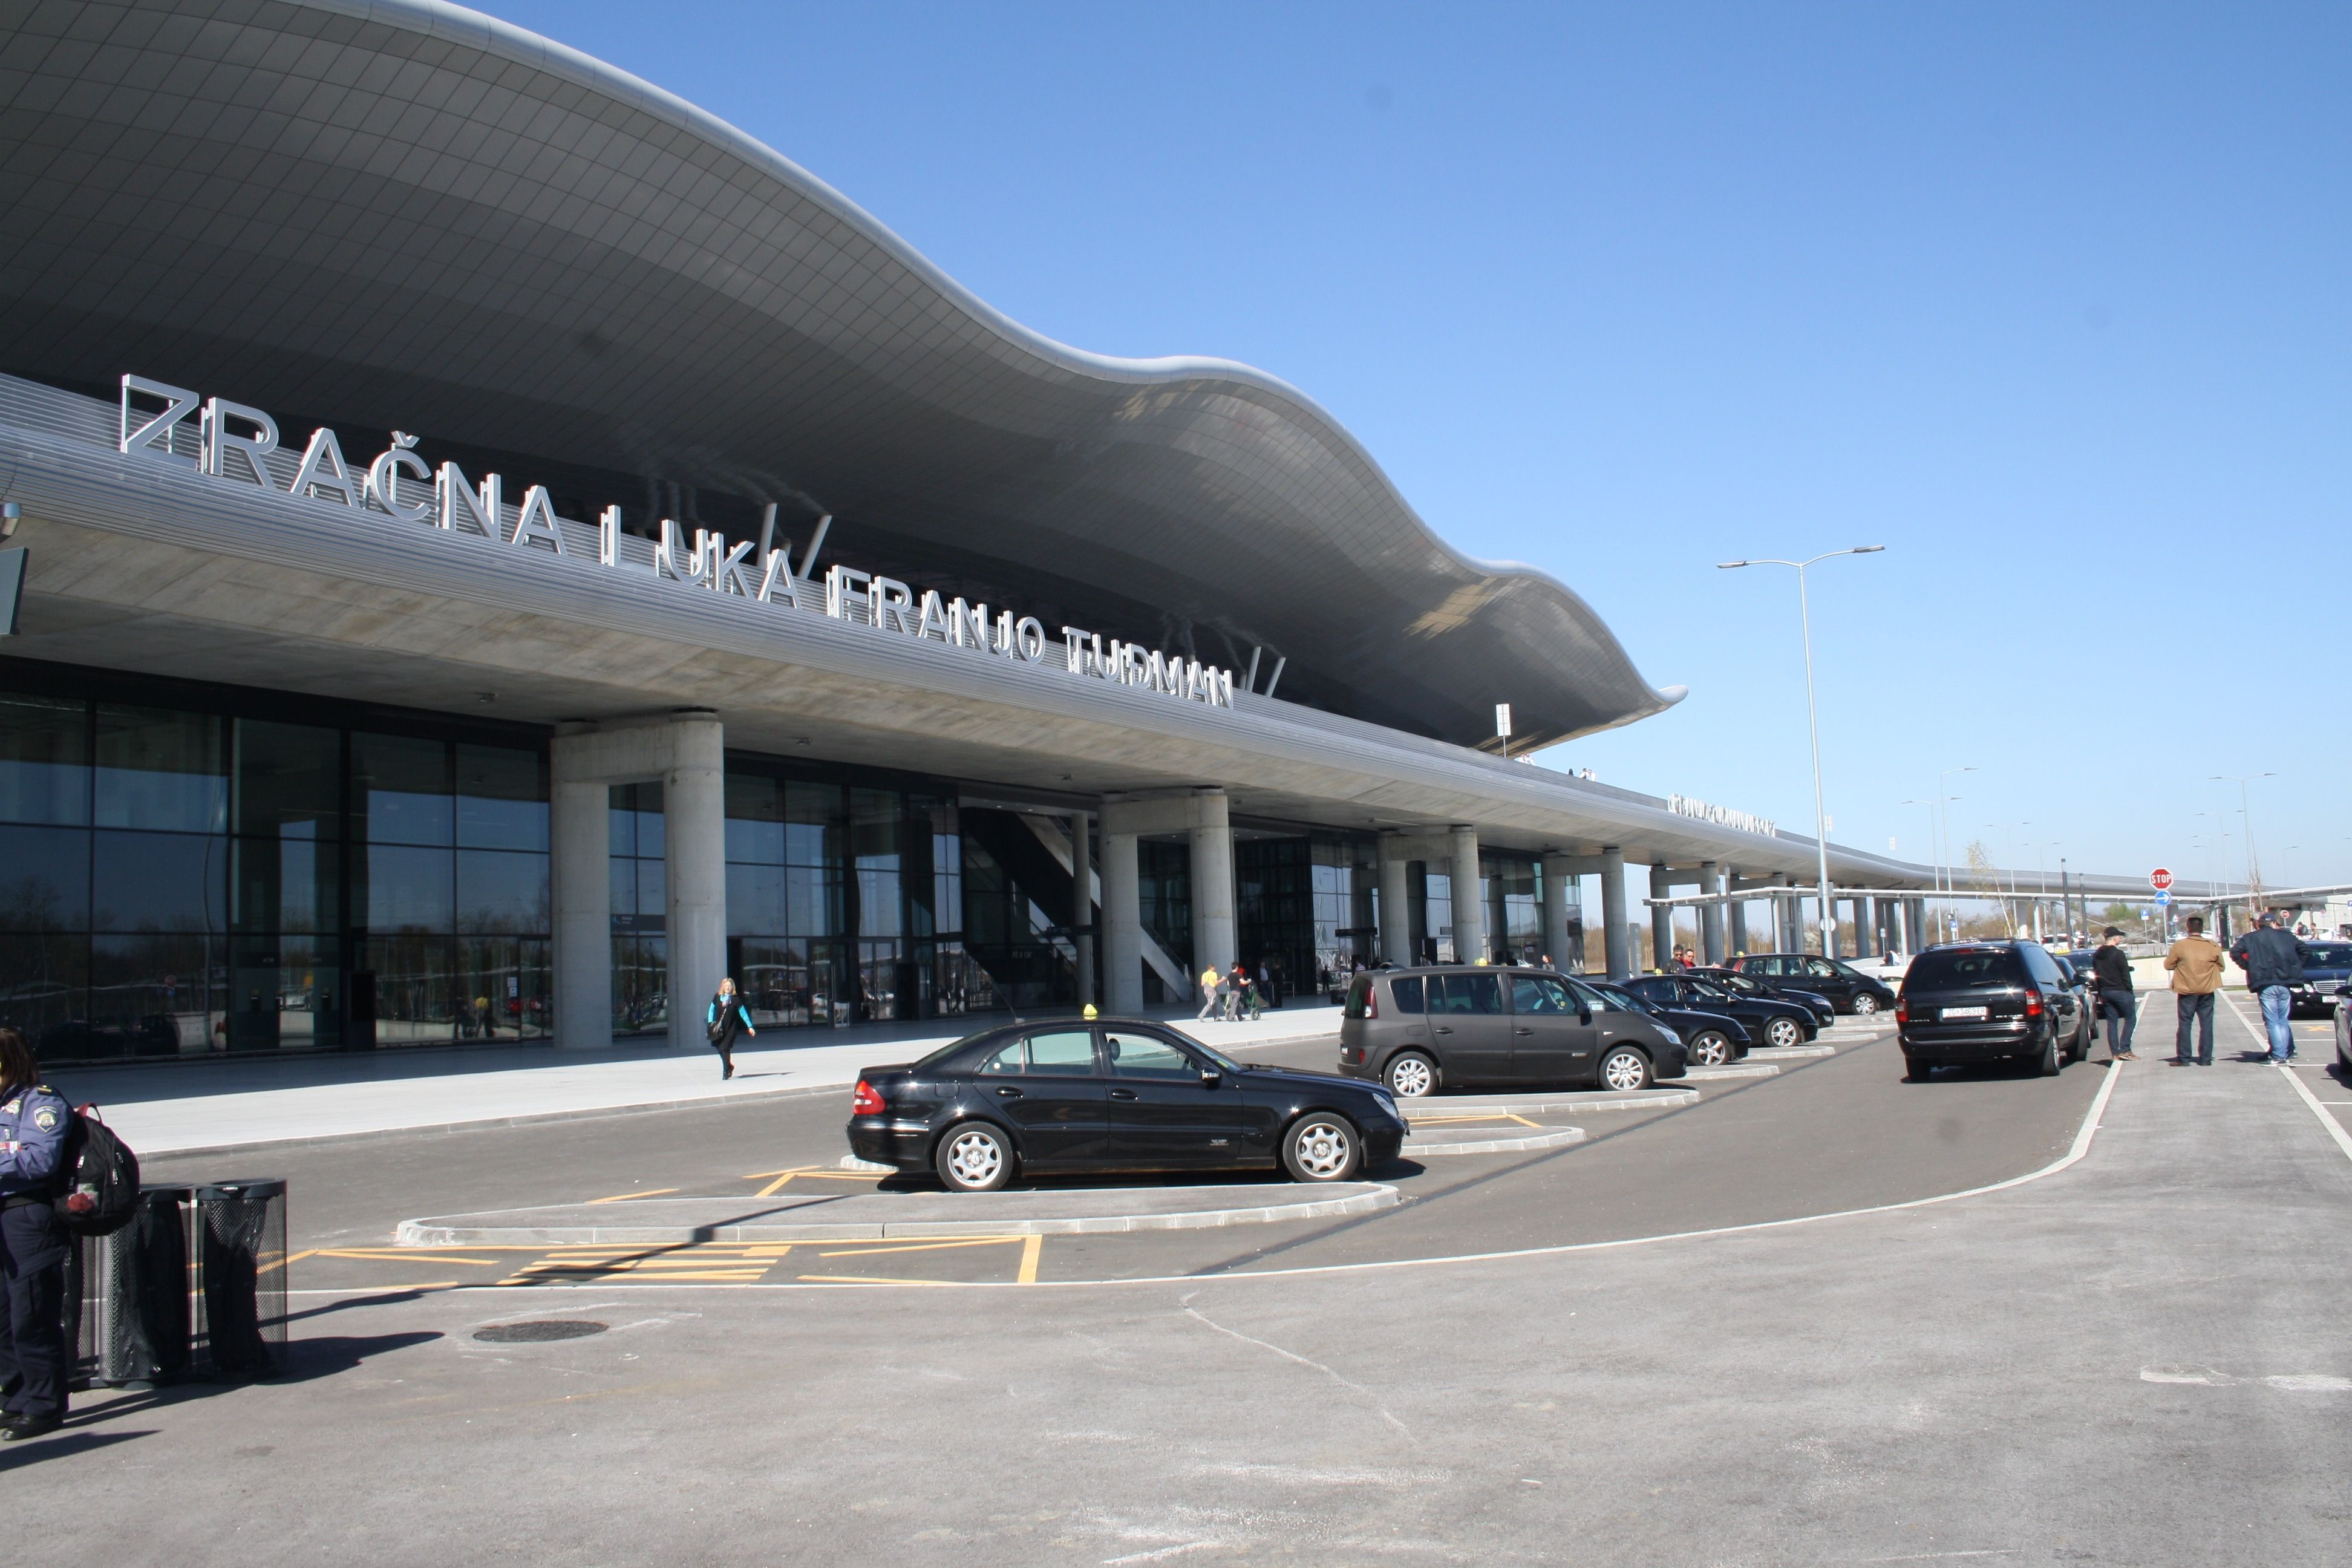 Dubrovnik To Zagreb Road Testing The New Terminals